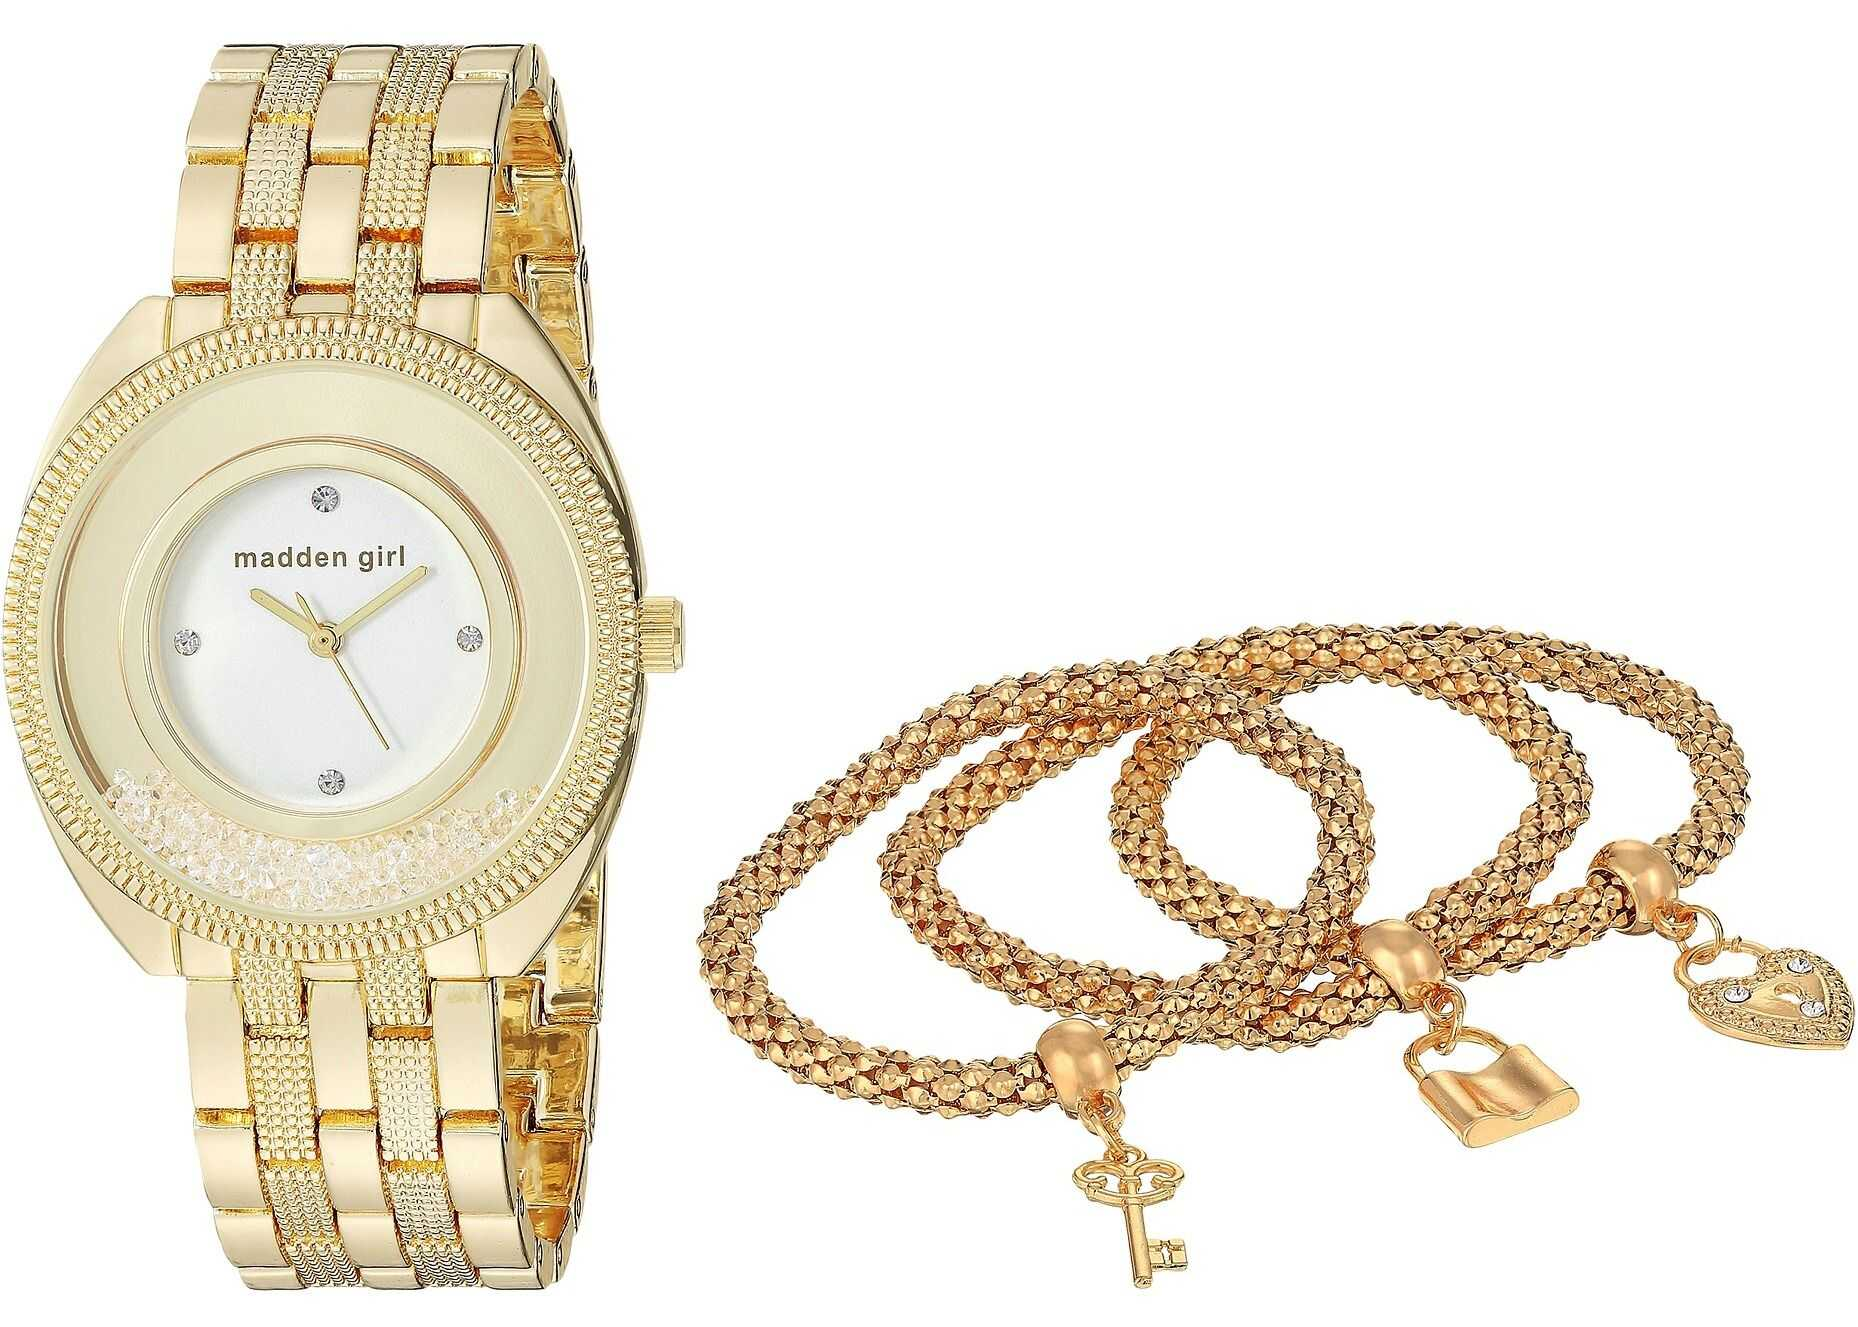 Steve Madden Madden Girl Watch with Charm and Stone Bracelet Set SMGS017 Gold